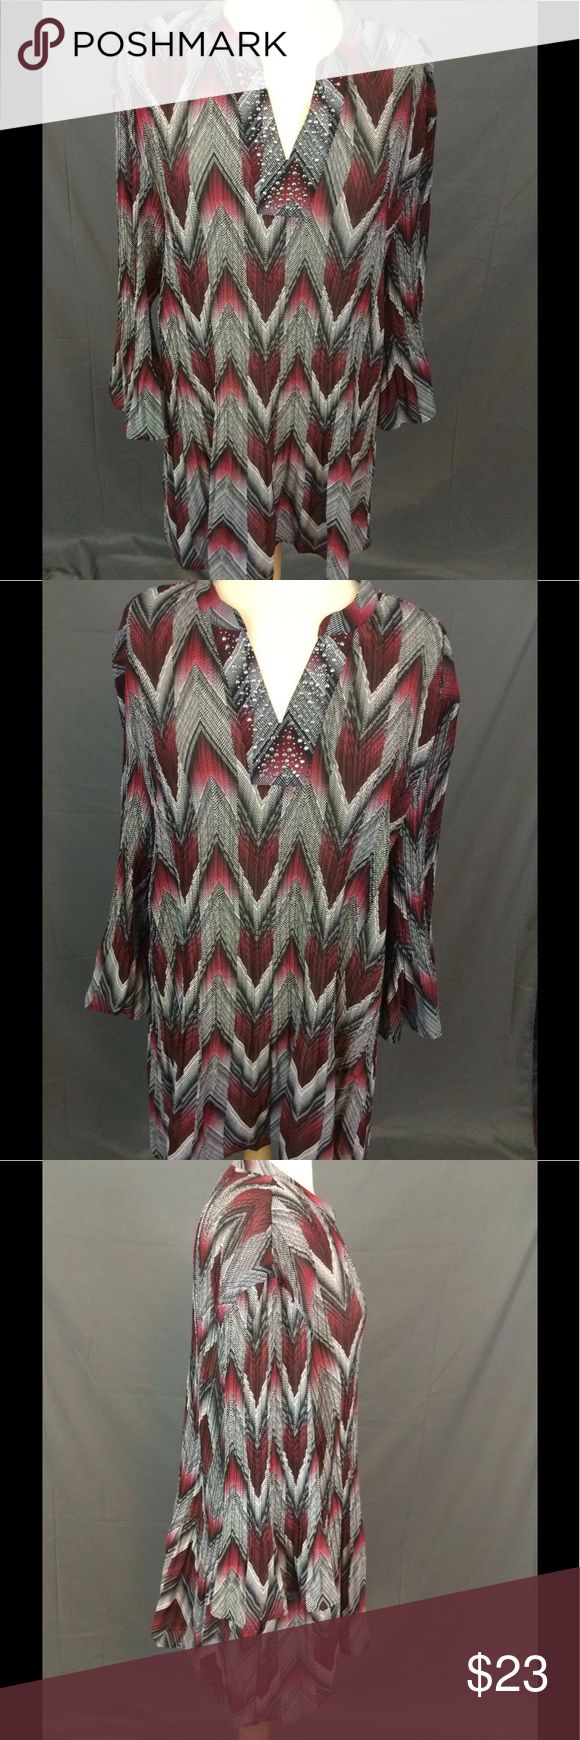 "Crinkle Chevron Studded V Neckline 3/4 Bell Sleeve Catherines Plus Size Crinkle Chevron Top Studded V Neck 3/4 Bell Sleeve Size 4X  Silver studded neckline.  Perfect Career Blouse   Underarm to underarm is approx 28 UN-stretched, 32"" stretched. Length is approx 33"" Catherines Tops"